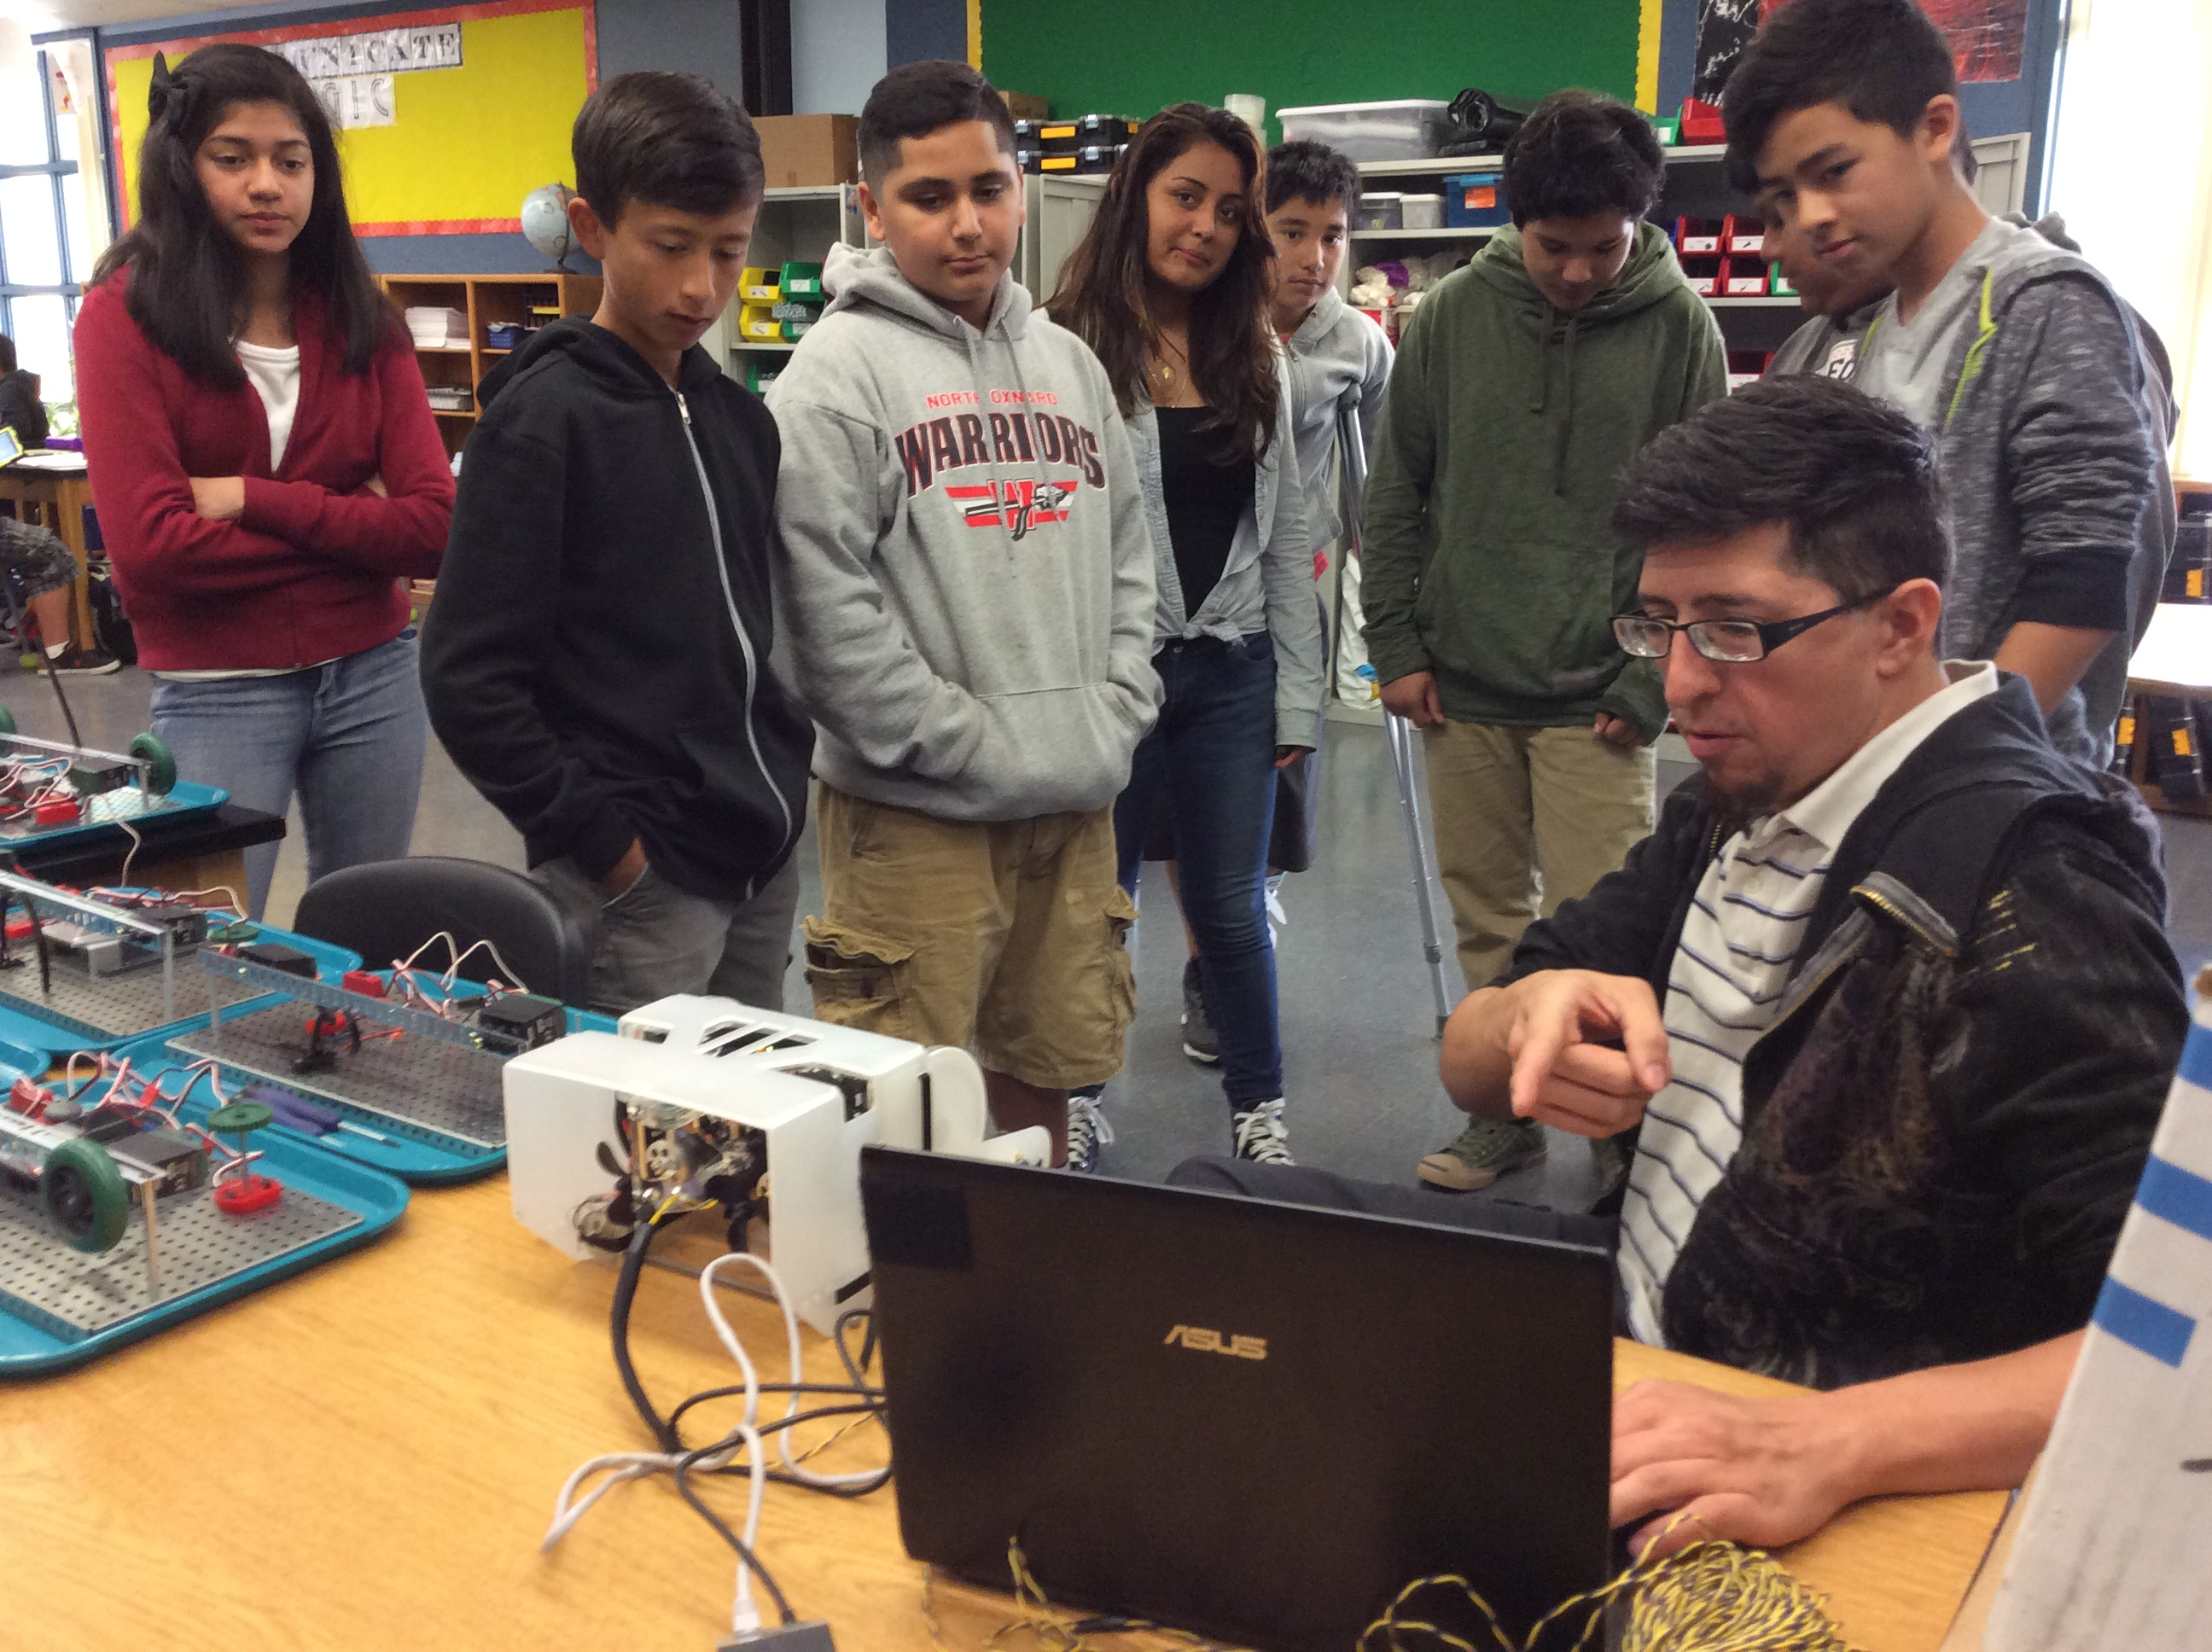 Paul spoke to the VEX robotics students about using ROVs for environmental research.